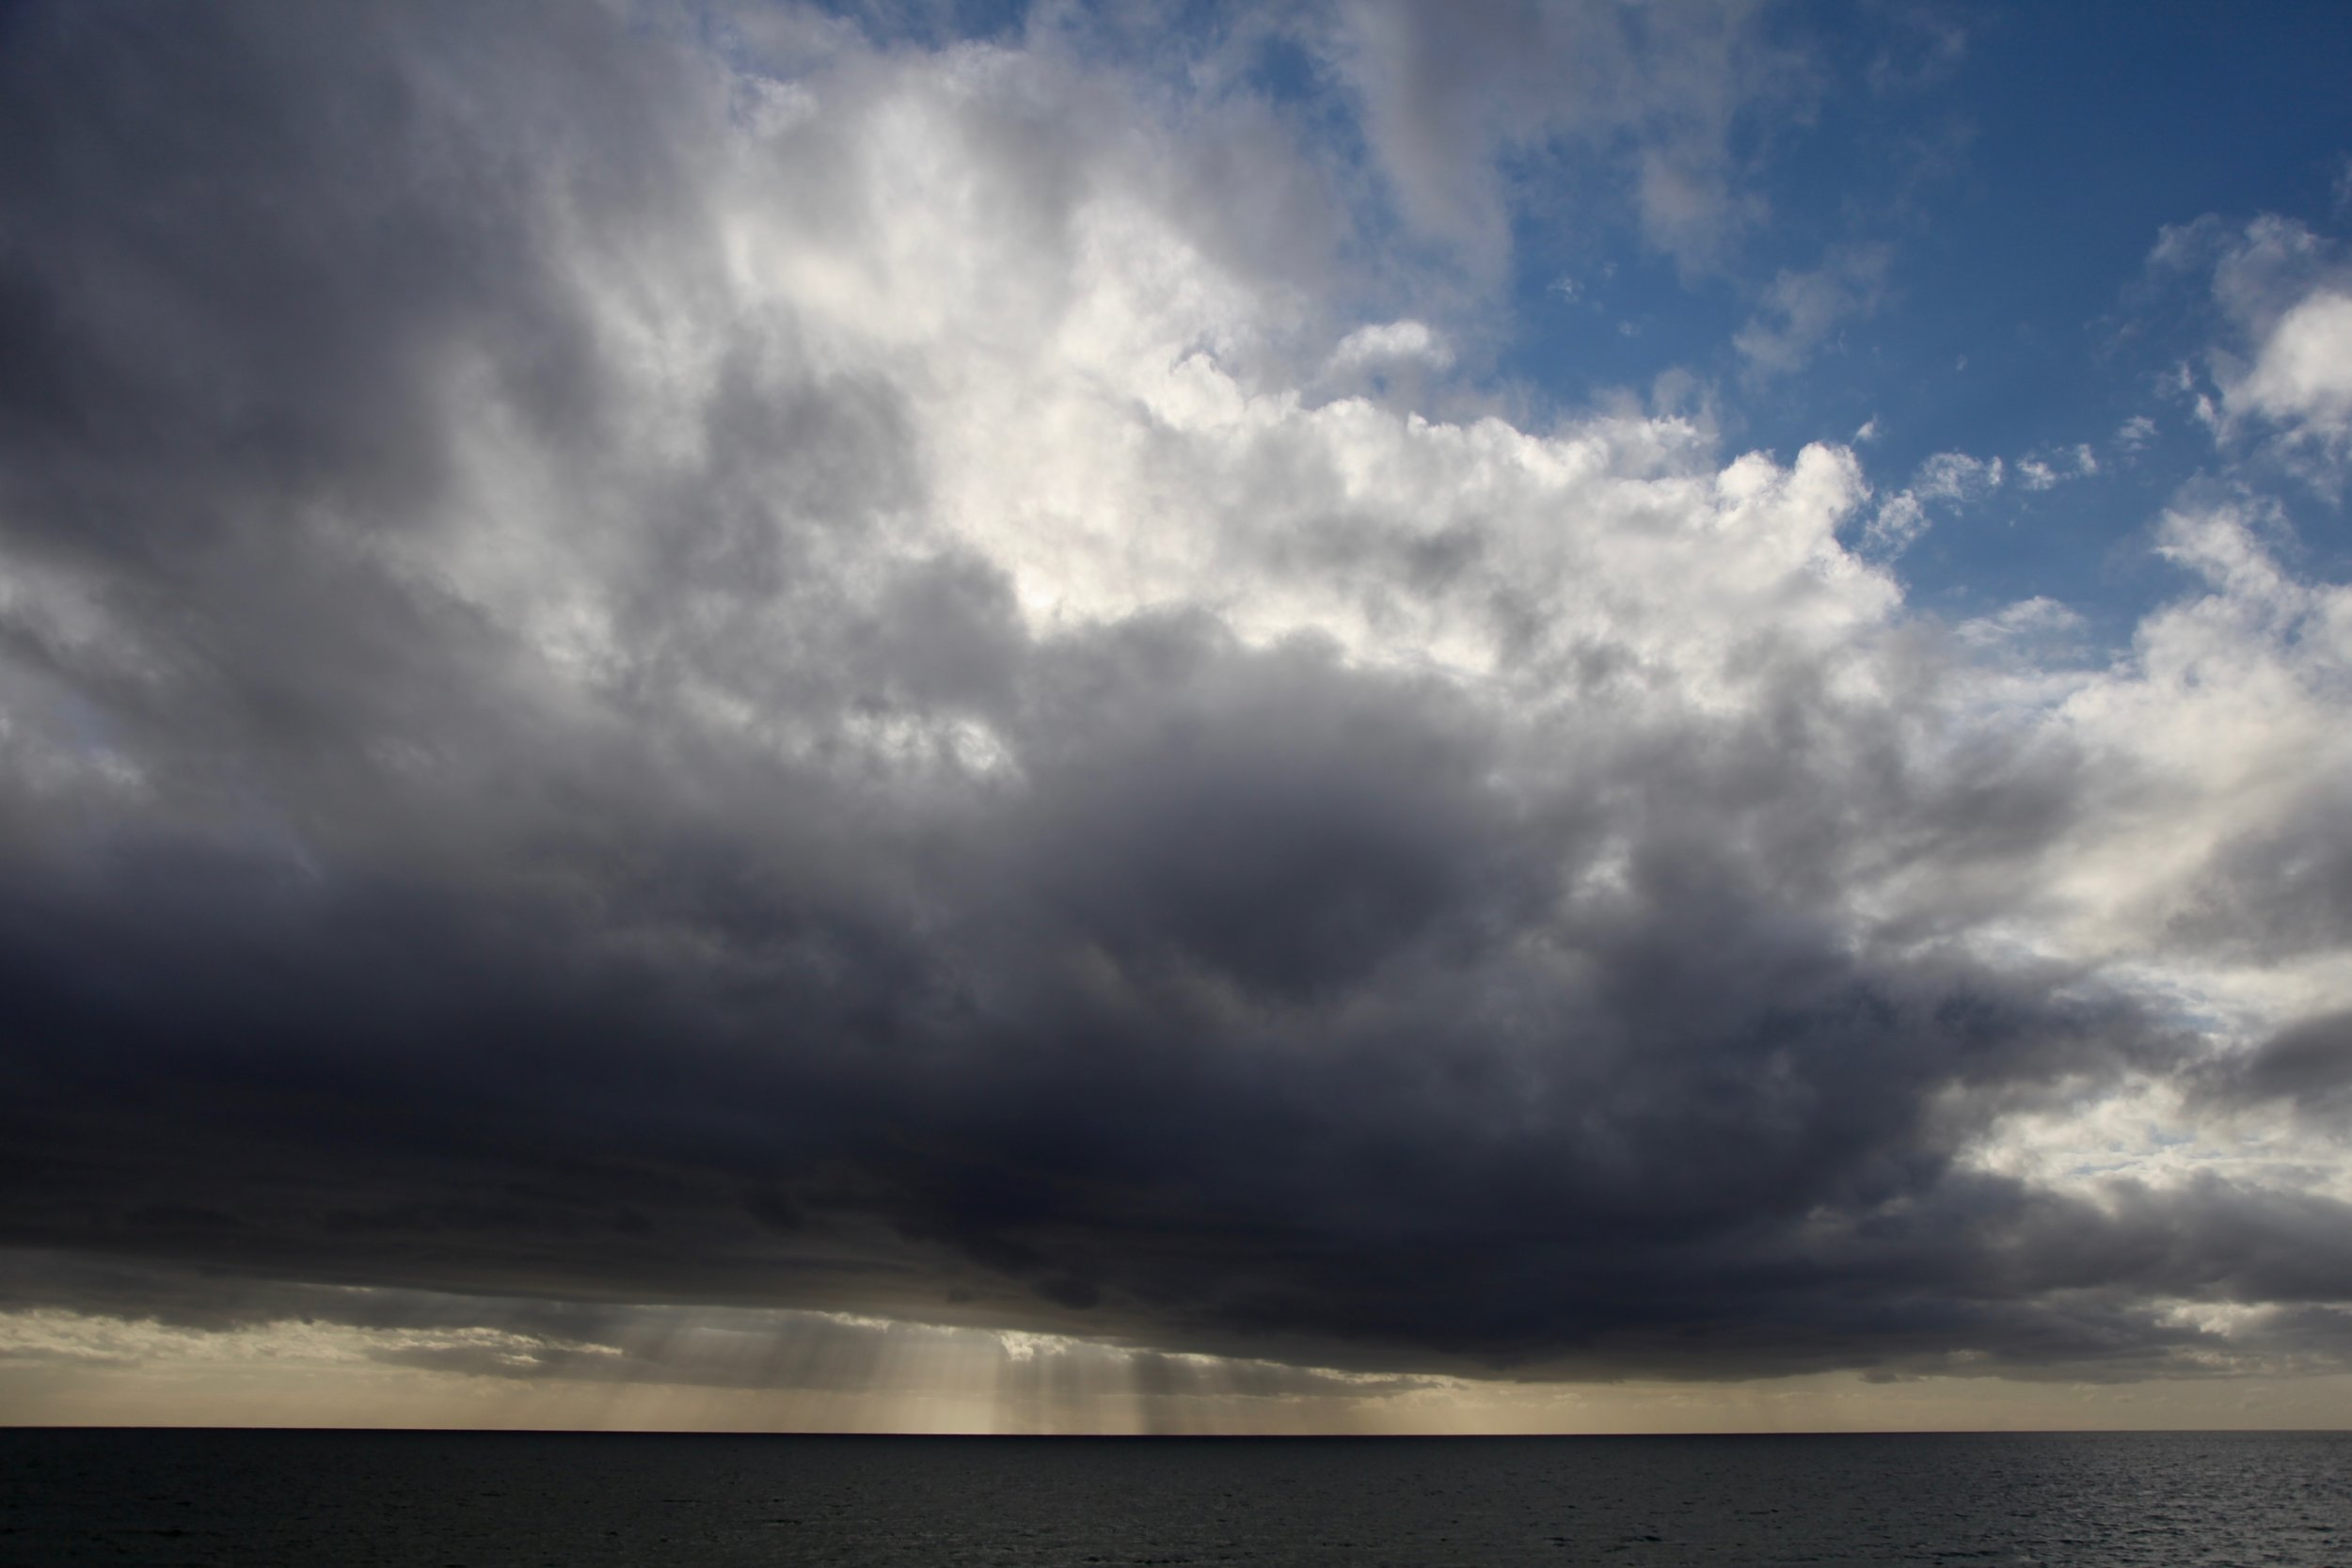 Storm rolling in over Henley Beach near Adelaide in South Australia.